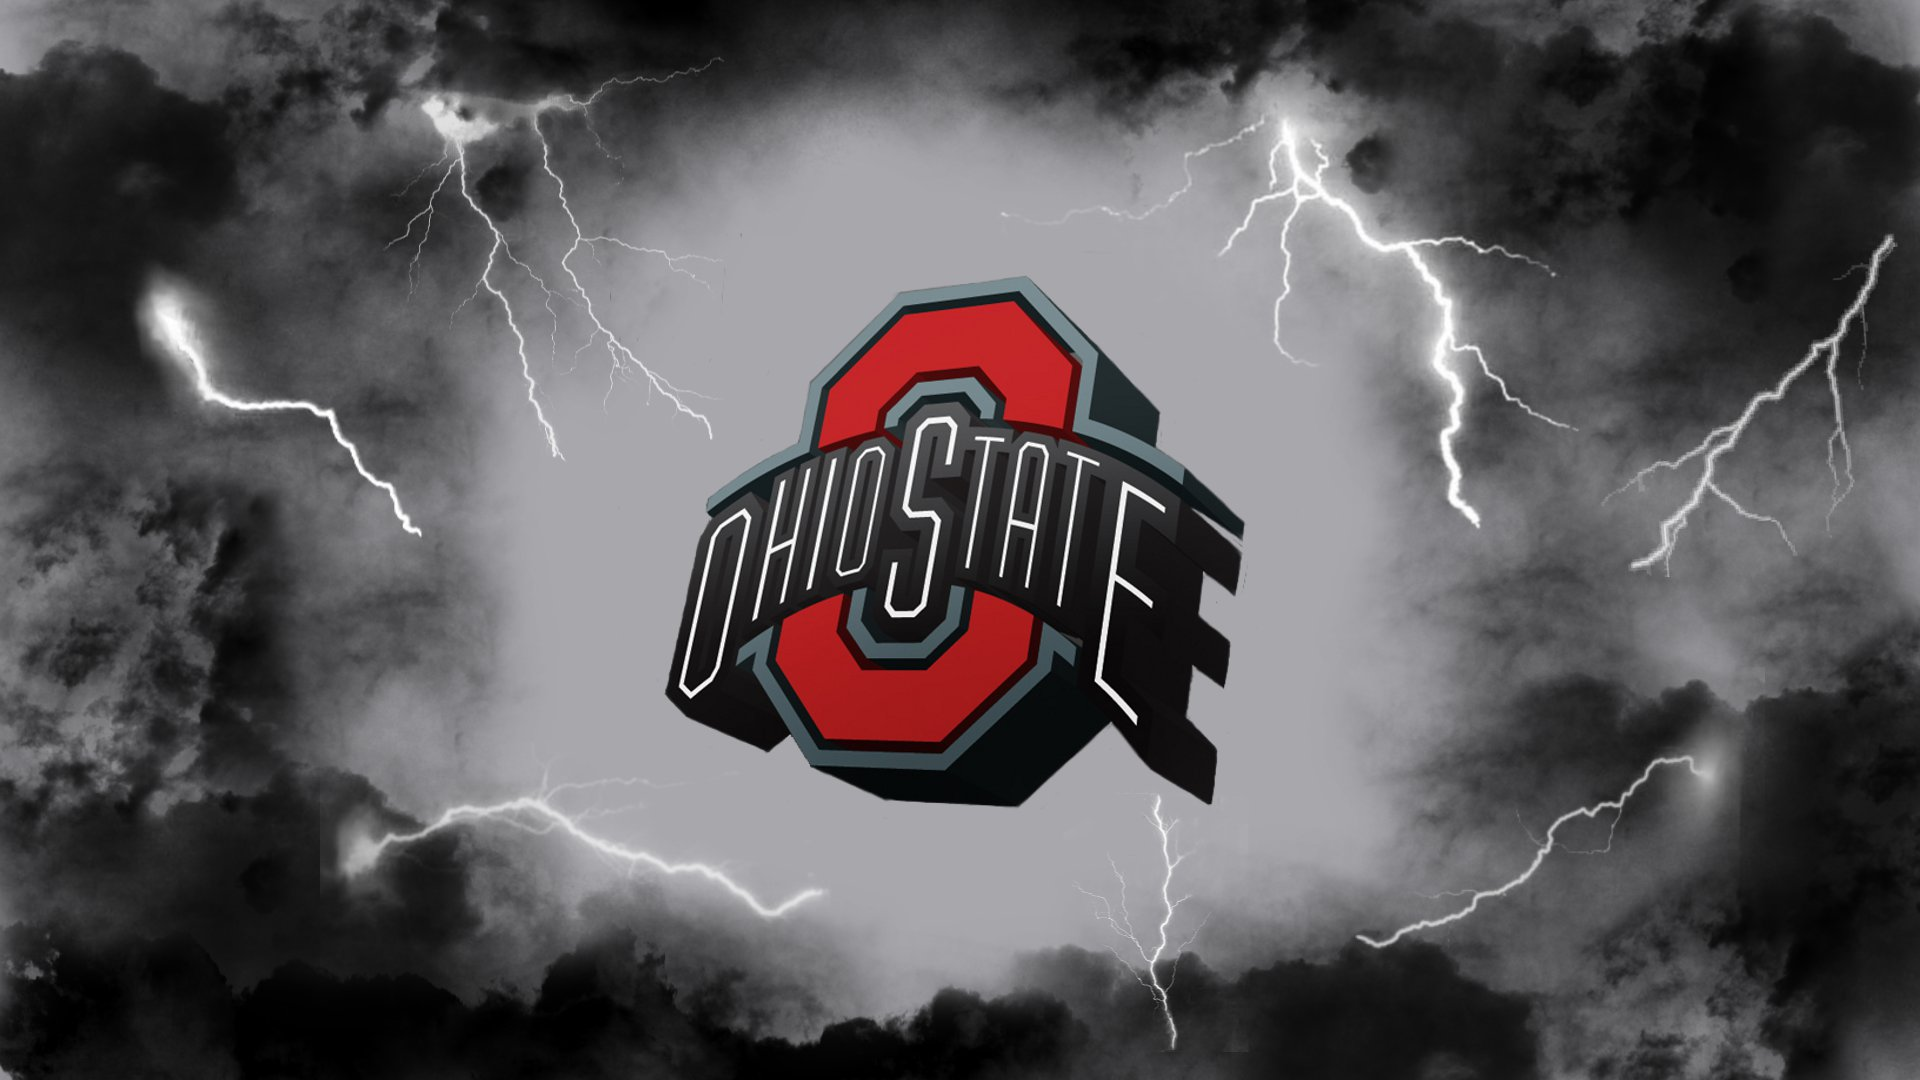 OSU Wallpaper 62   Ohio State Football Wallpaper 28972376 1920x1080